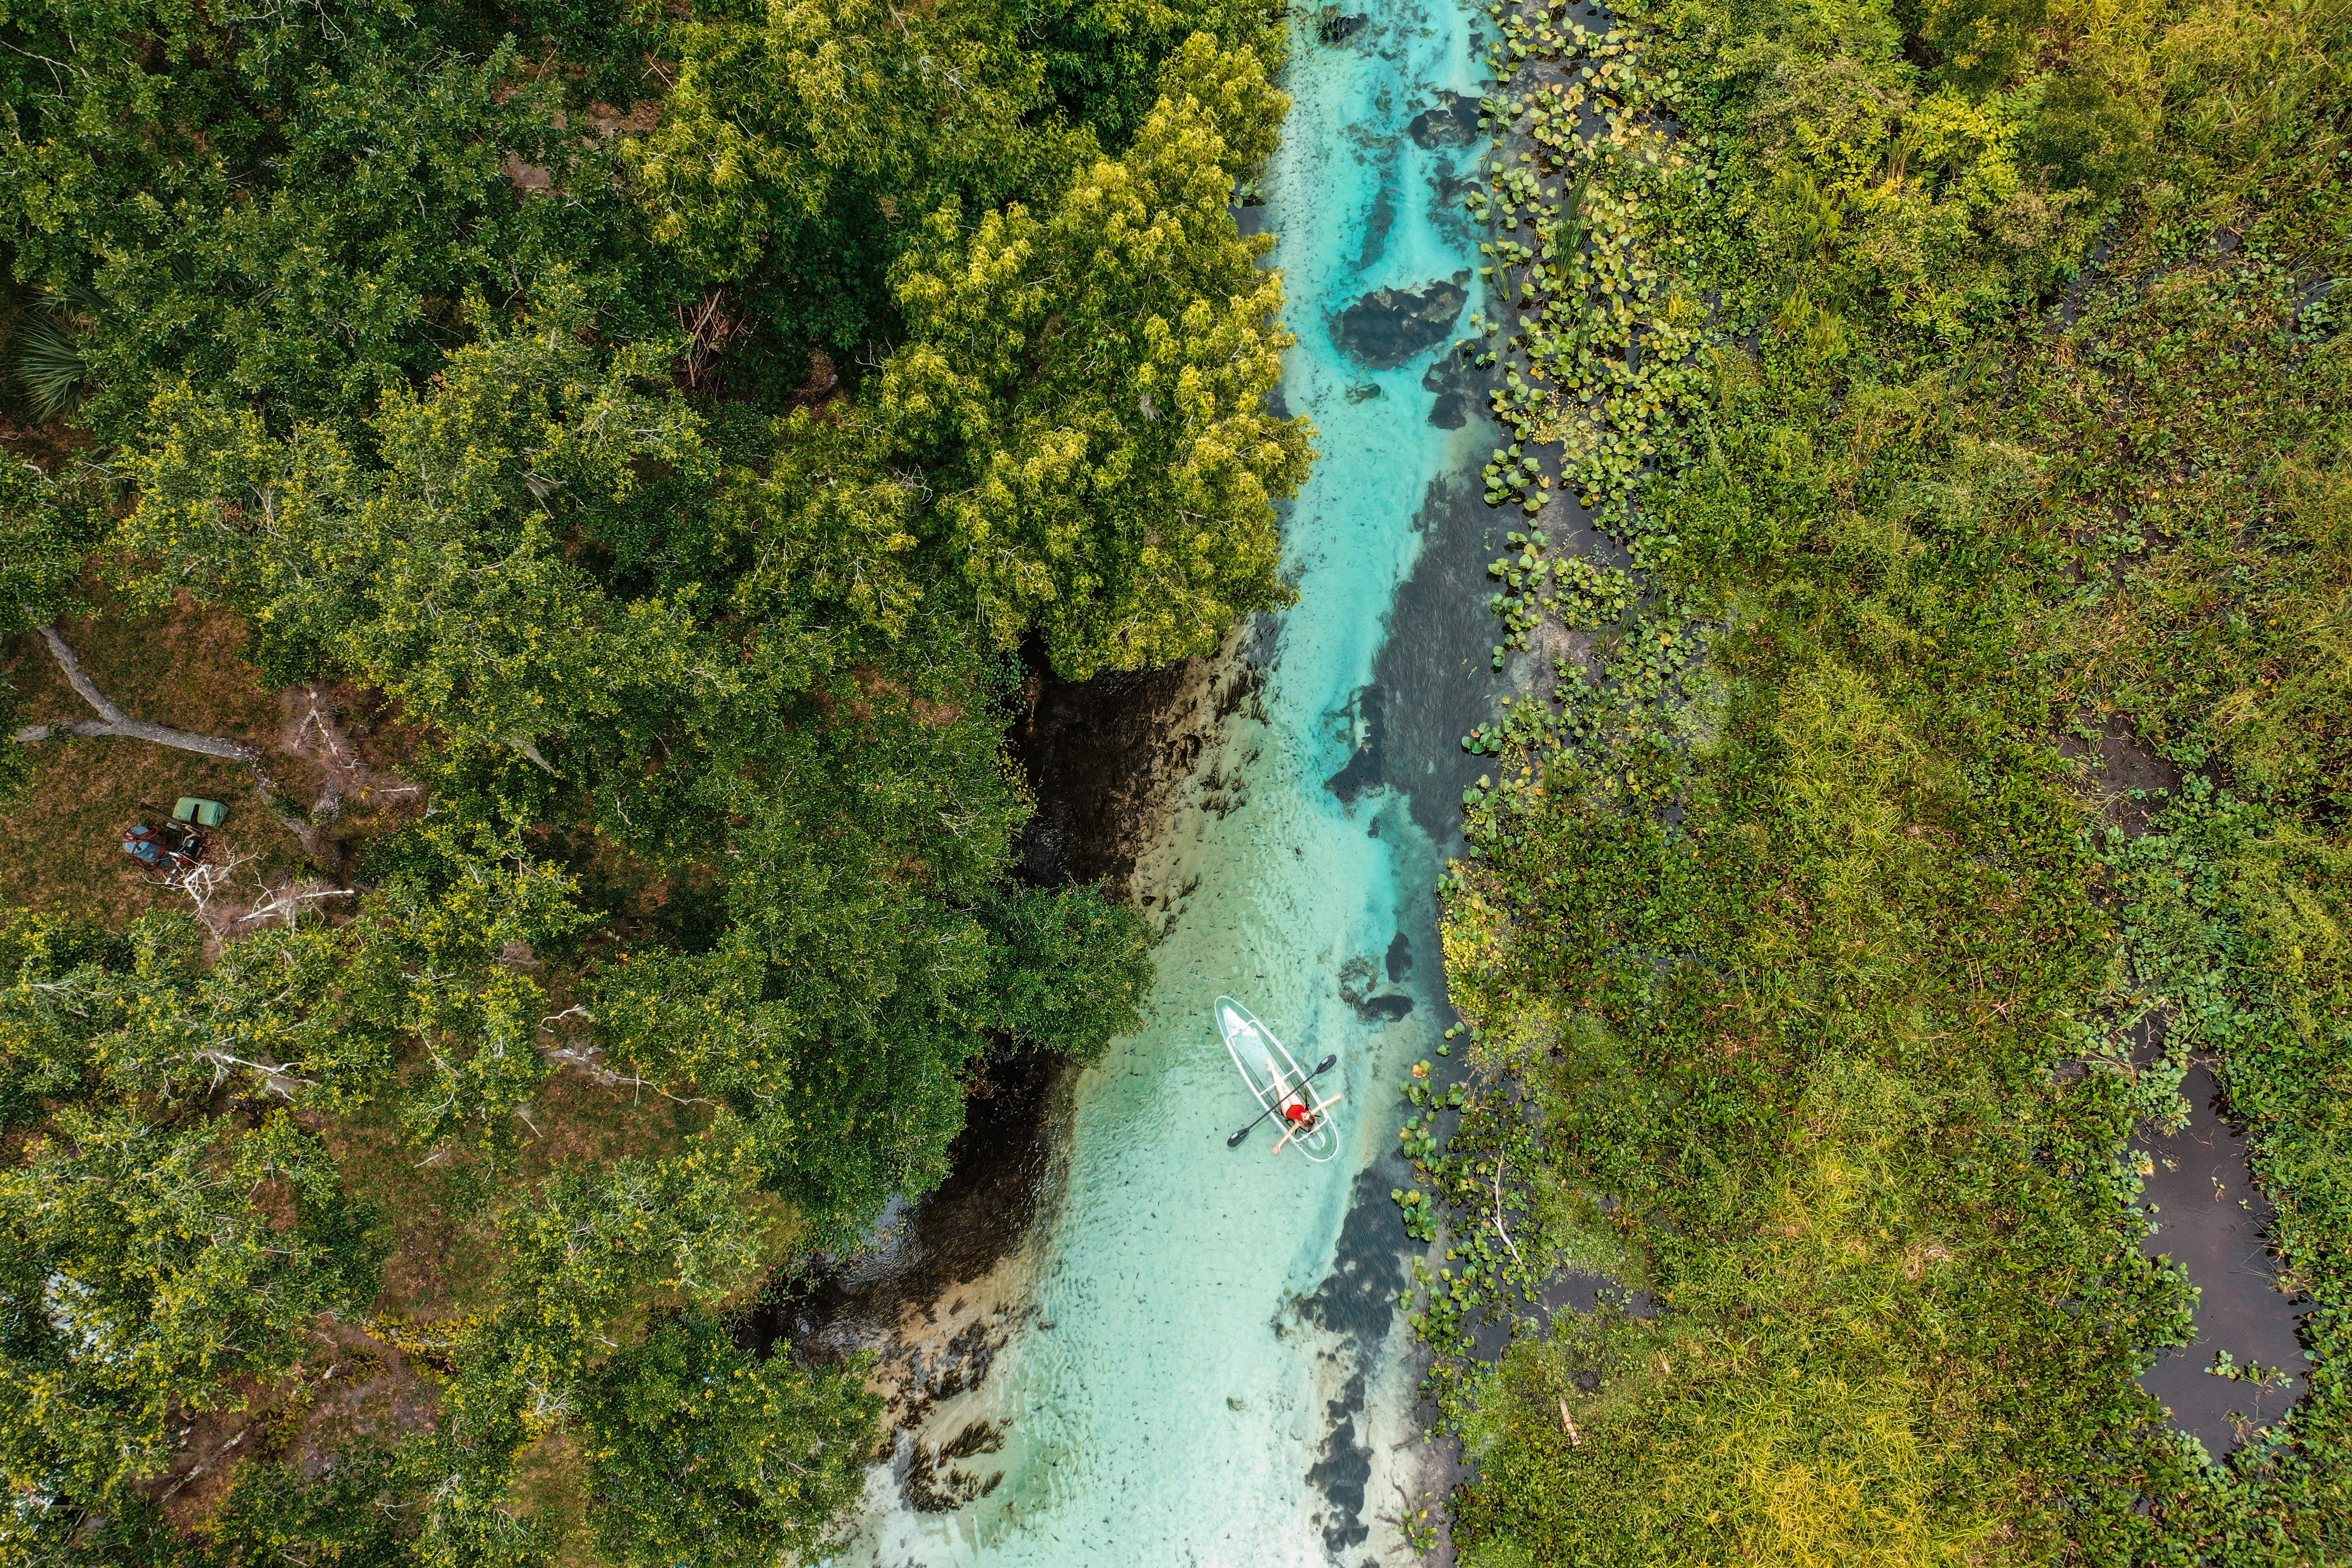 Florida S 7 Best Natural Springs For Year Round Adventure Lonely Planet